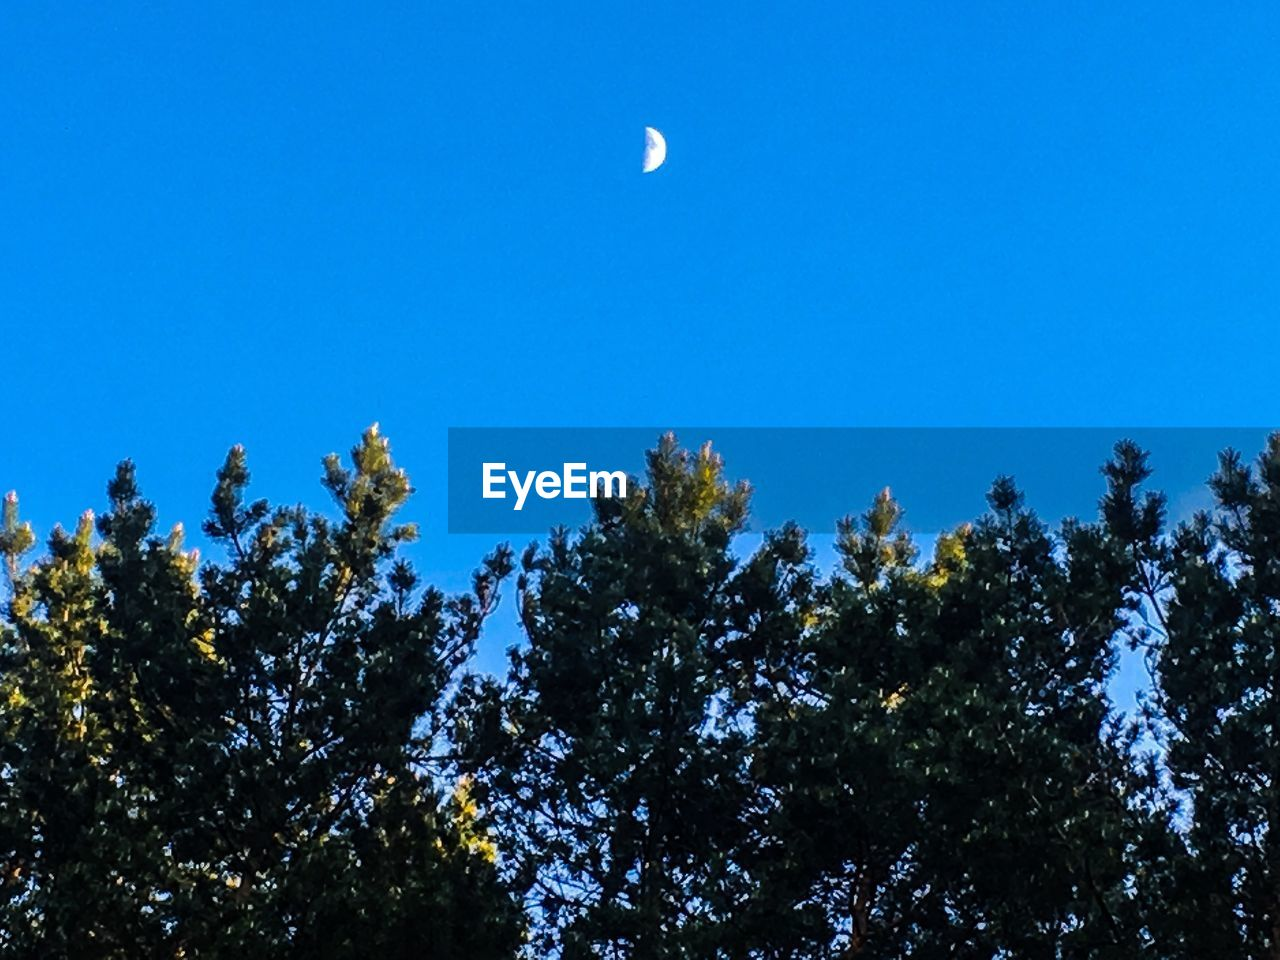 tree, plant, sky, low angle view, beauty in nature, moon, blue, growth, nature, clear sky, tranquility, no people, scenics - nature, tranquil scene, space, astronomy, half moon, outdoors, day, silhouette, treetop, planetary moon